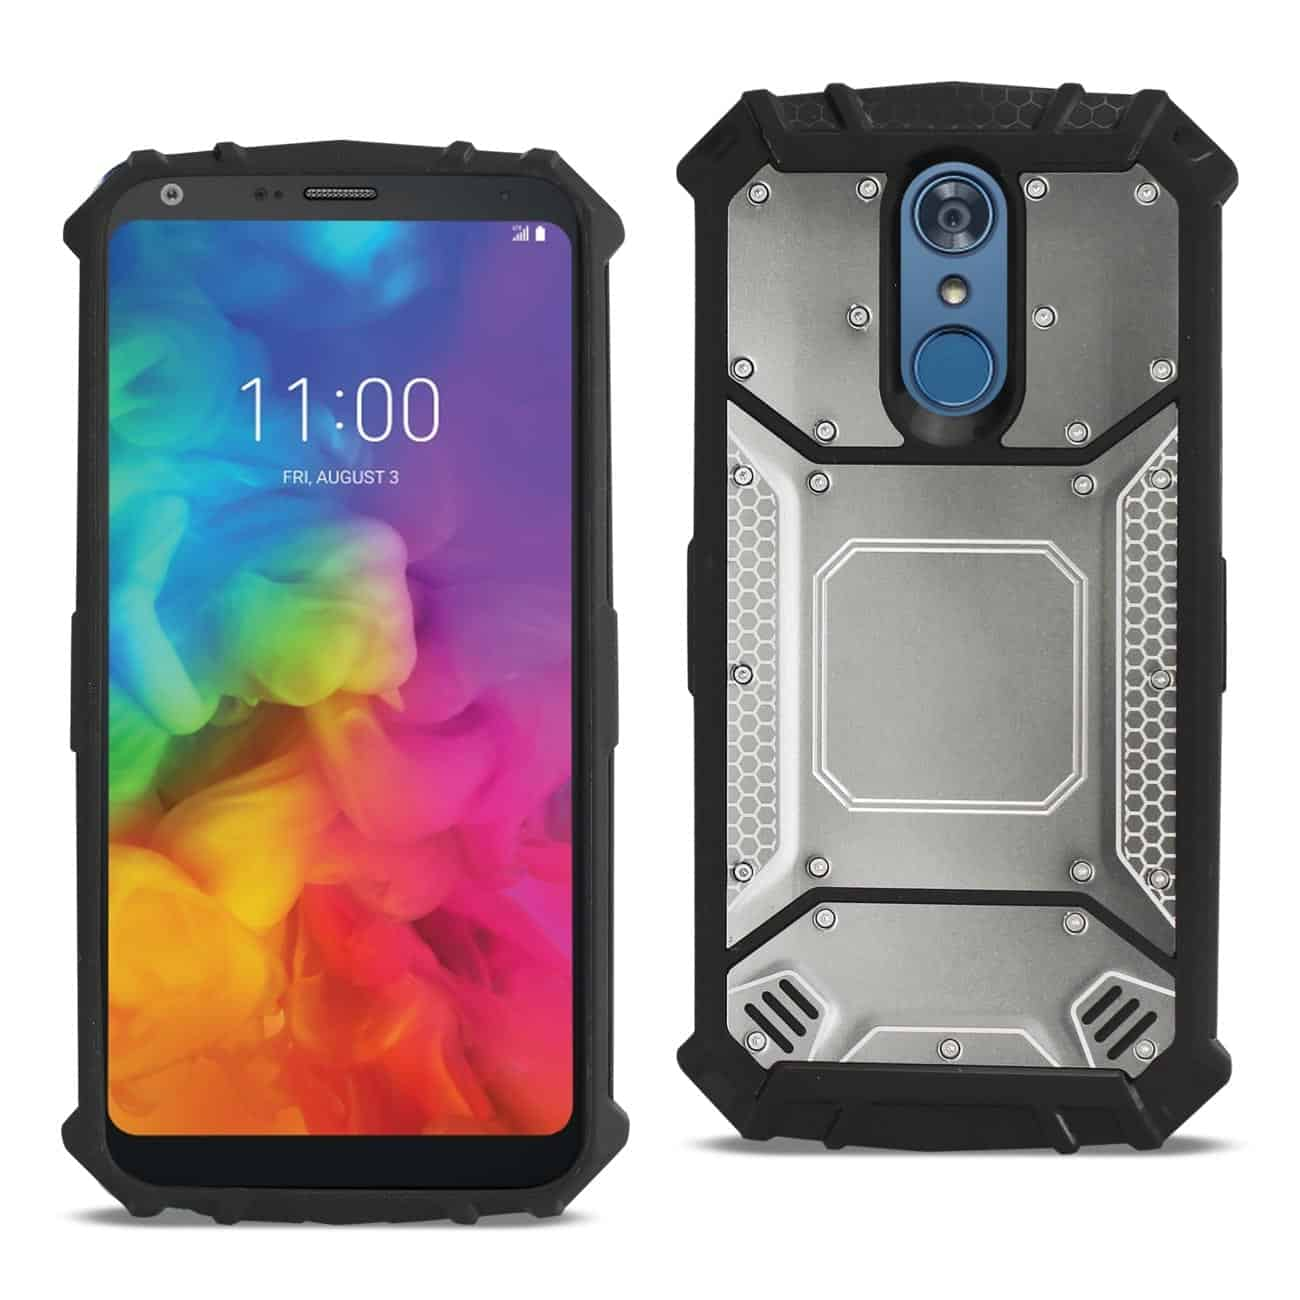 LG Q7 Plus Metallic Front Cover Case In Gray